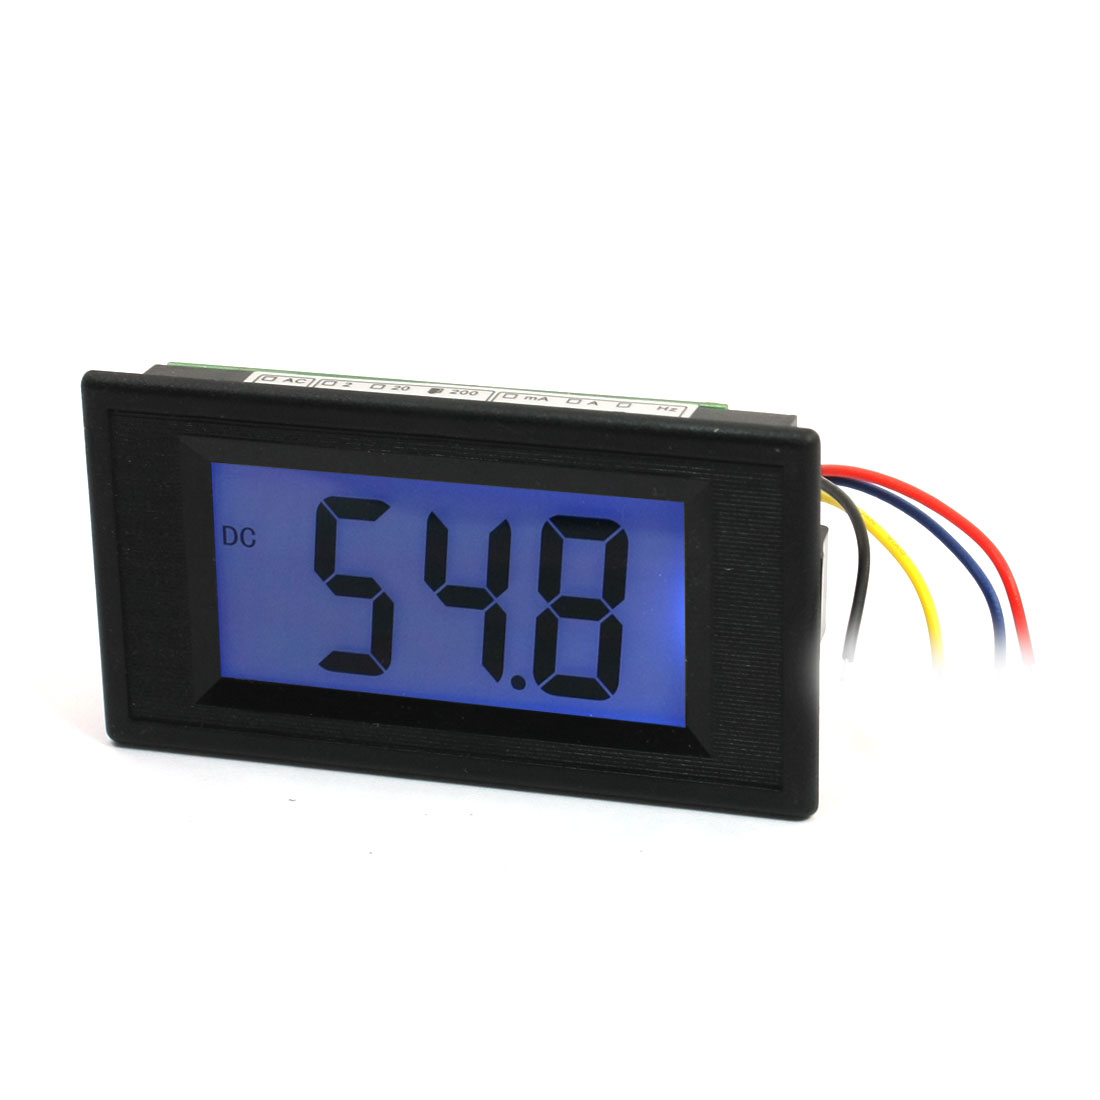 Blue-LCD-Display-3-Digits-DC-0-200mV-Digital-Panel-Voltmeter